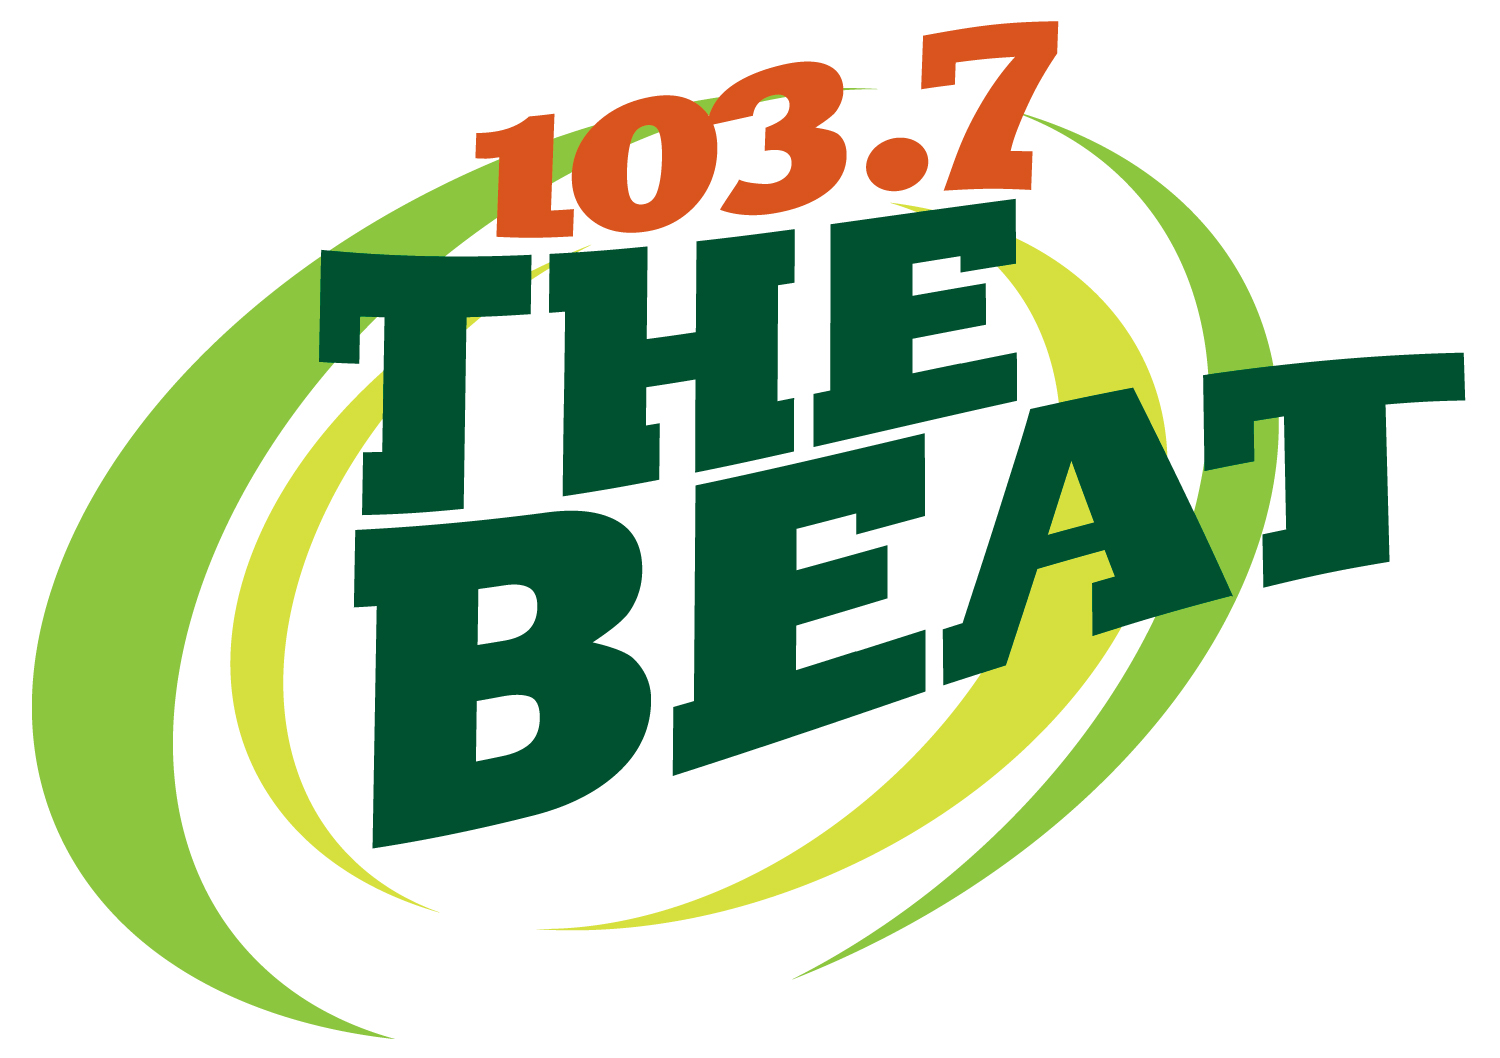 The logo for 103.7 the beat